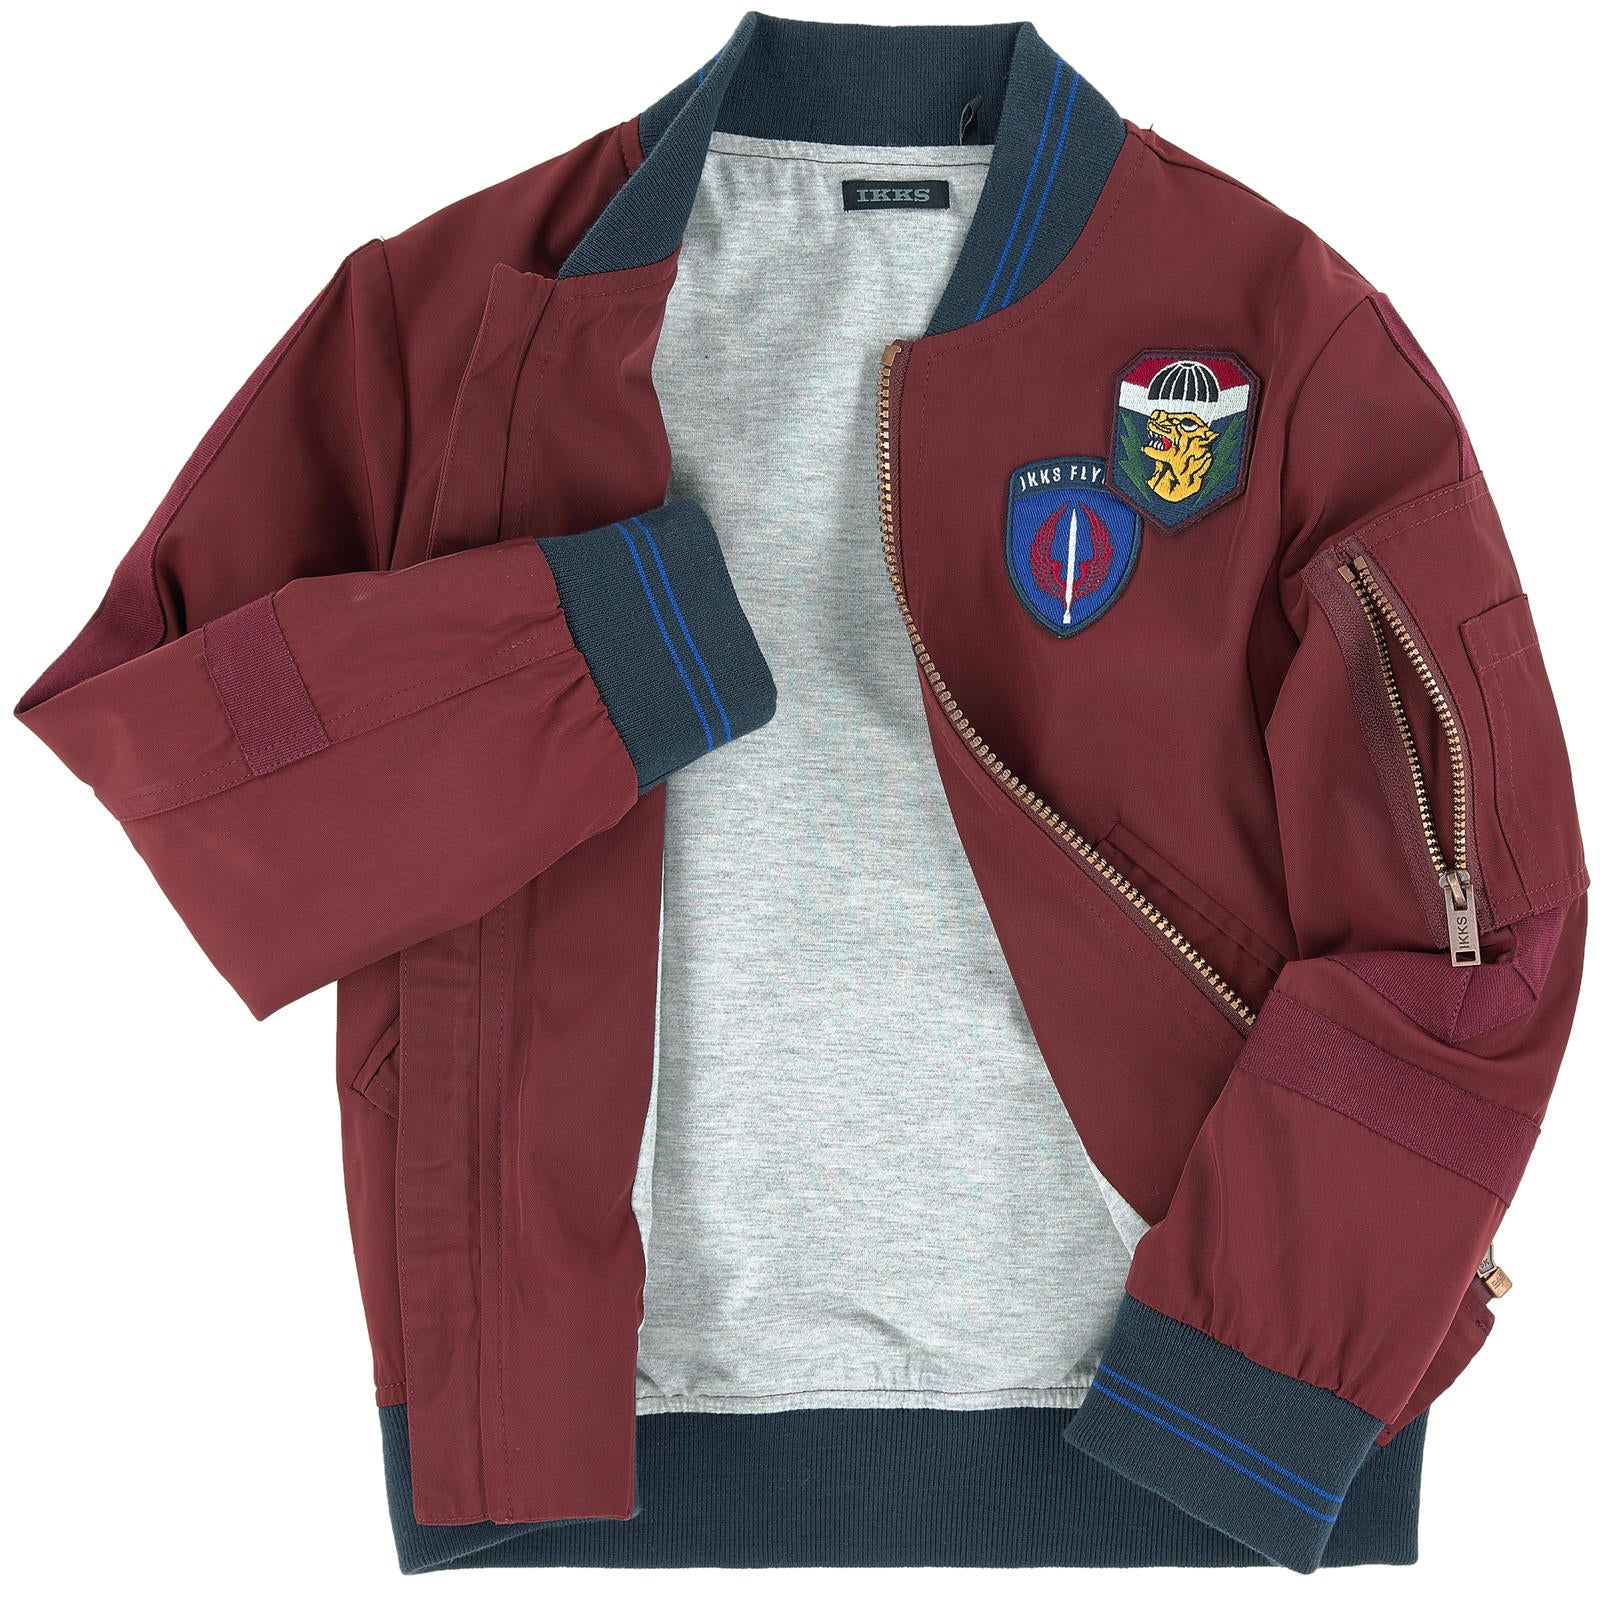 BOYS BOMBER JACKET WITH PATCHES